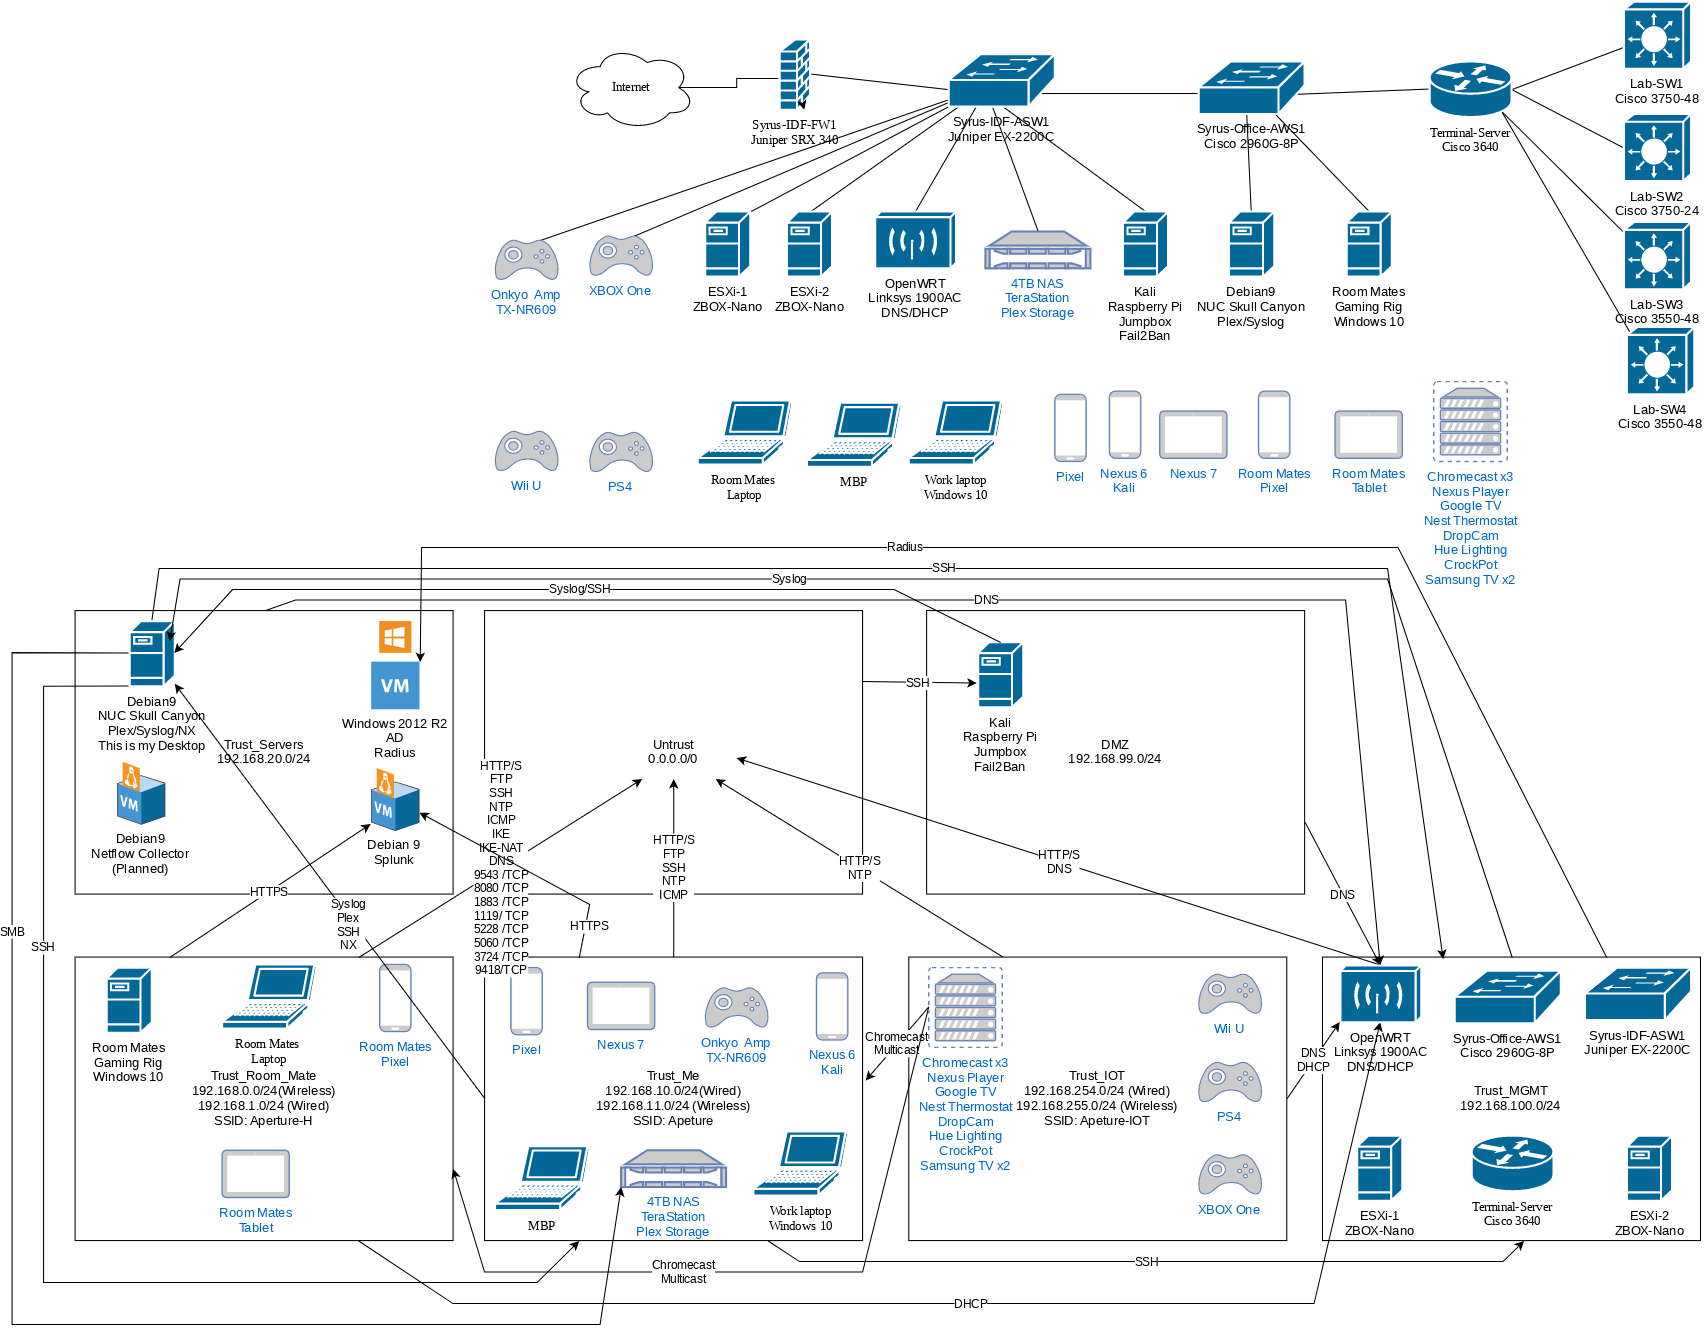 36 Stunning Home Network Diagram Ideas Https Bacamajalah Com 36 Stunning Home Network Diagram Ideas Diag Home Network Internet Switch Computer Network